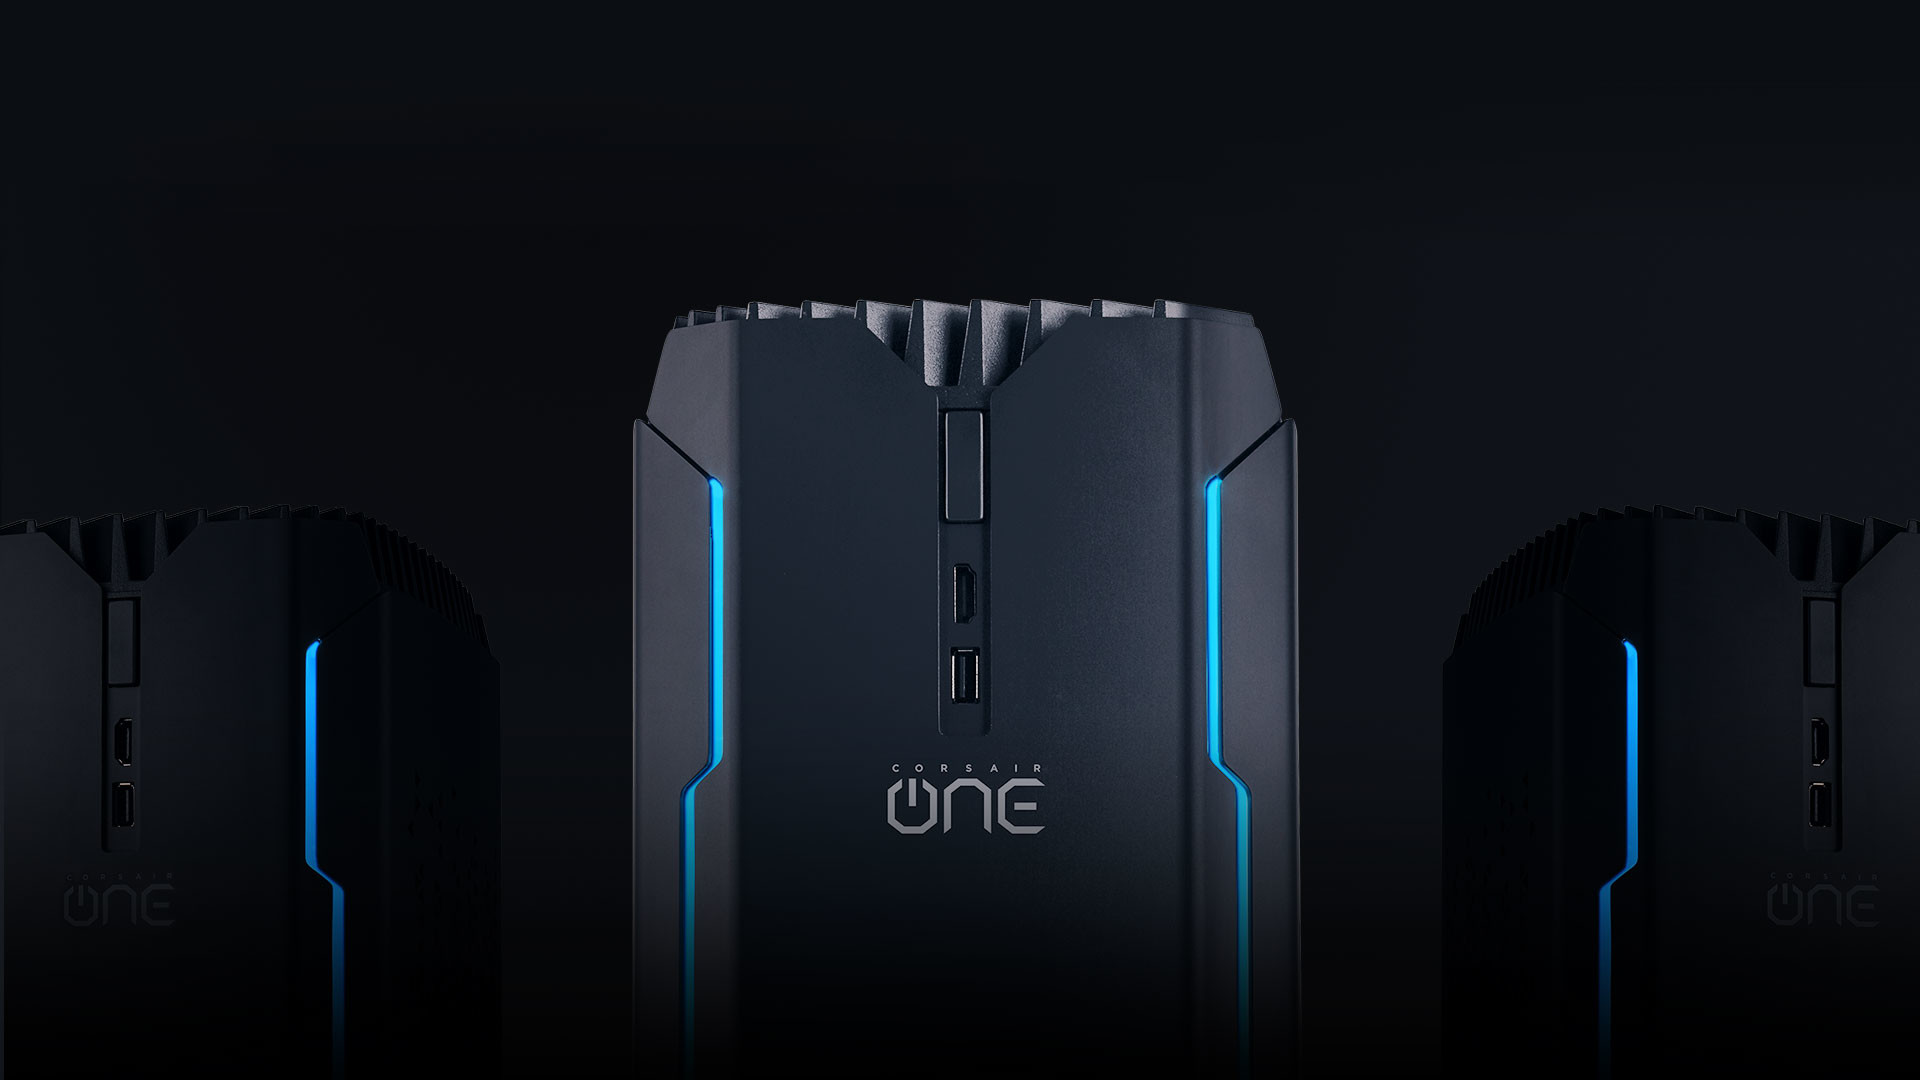 … corsair one king of compact gaming pc s …